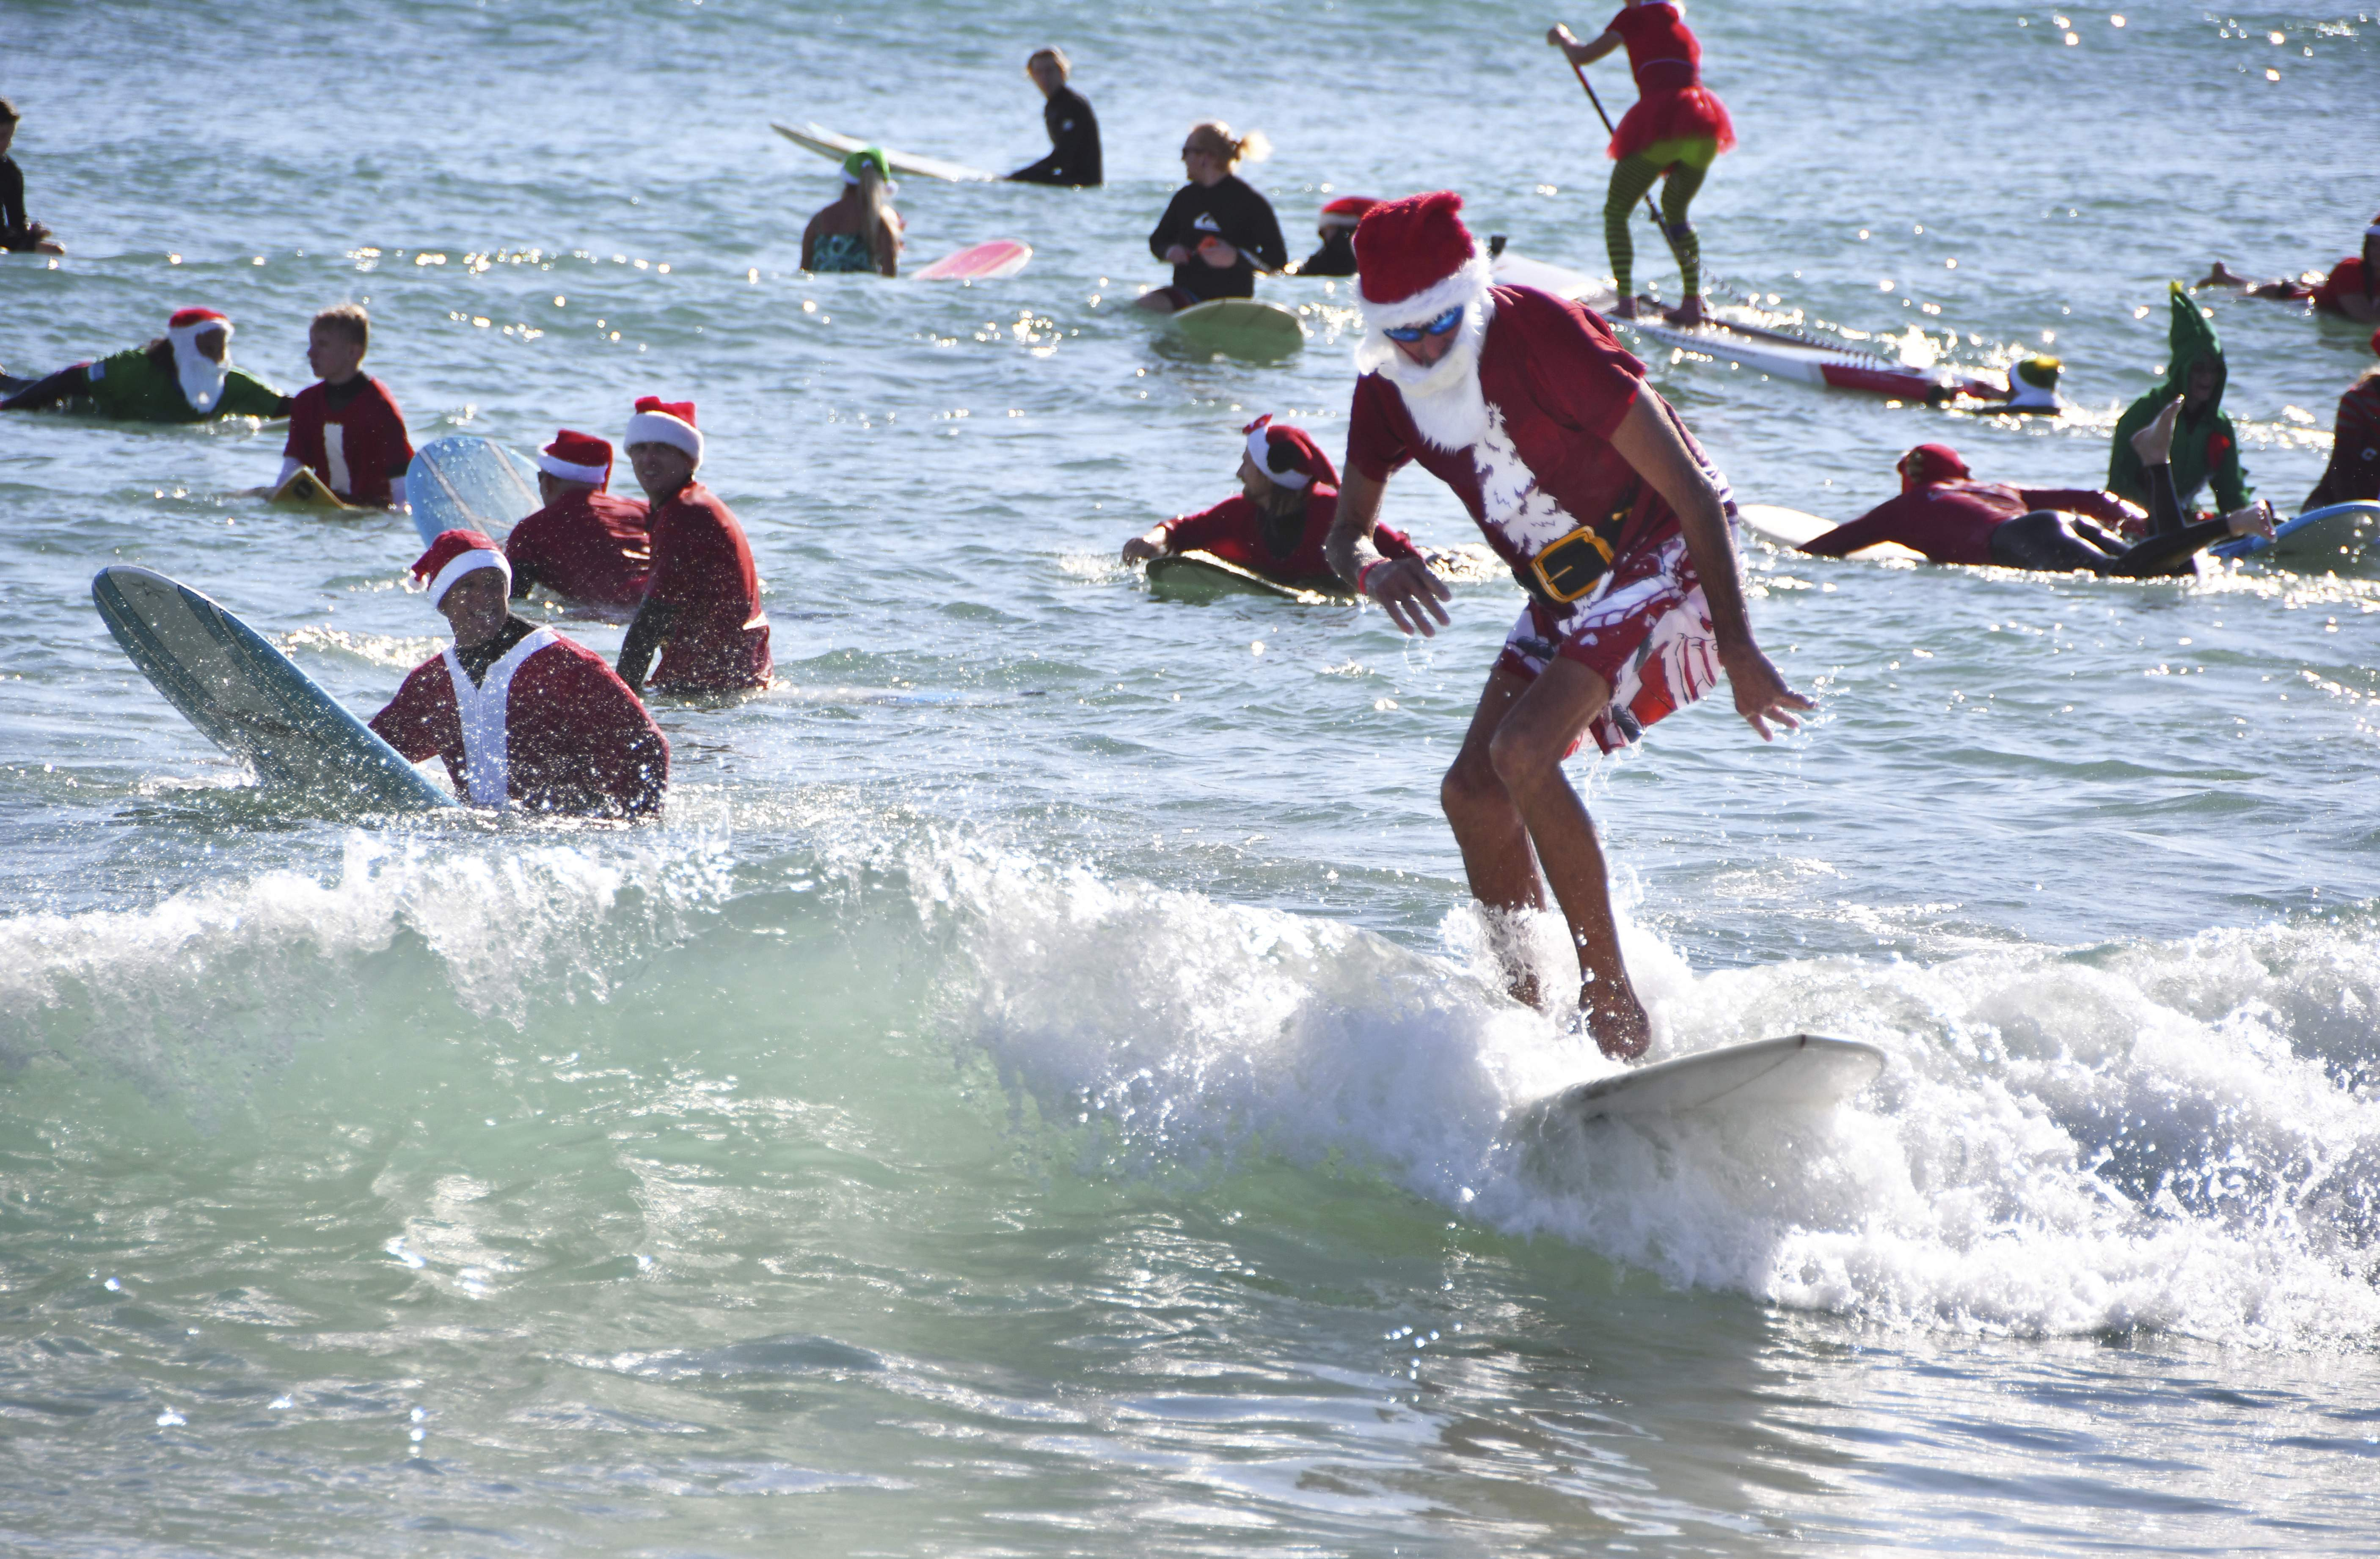 Florida Christmas.A Florida Christmas Hundreds Of Surfers In Santa Suits Ride